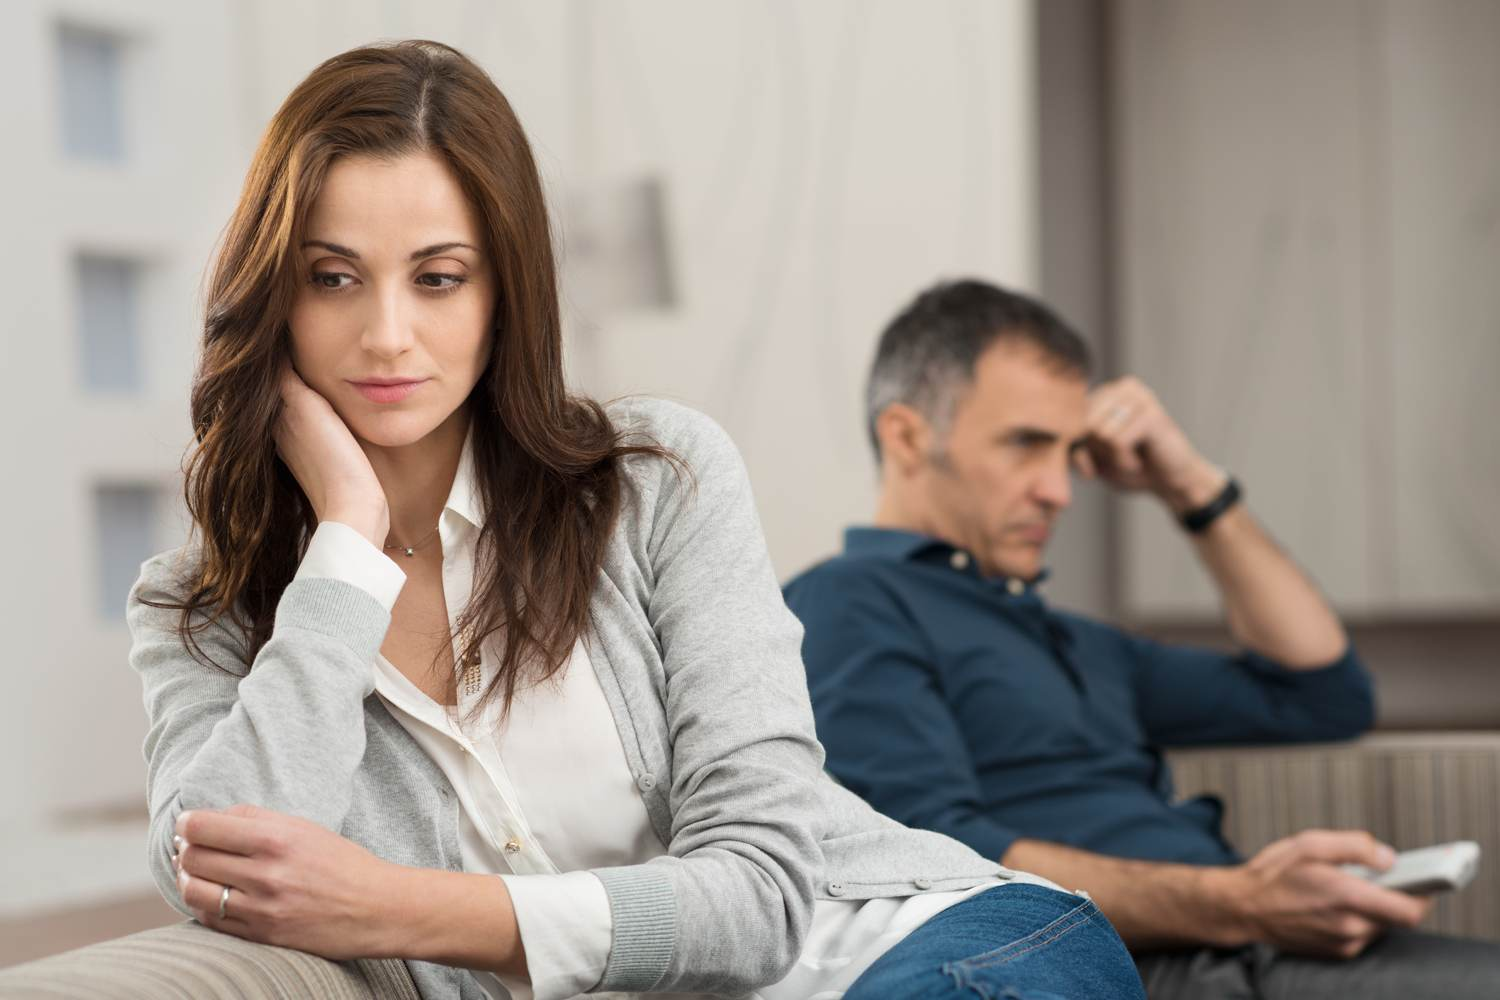 Family Law concerns: Separation and Divorce